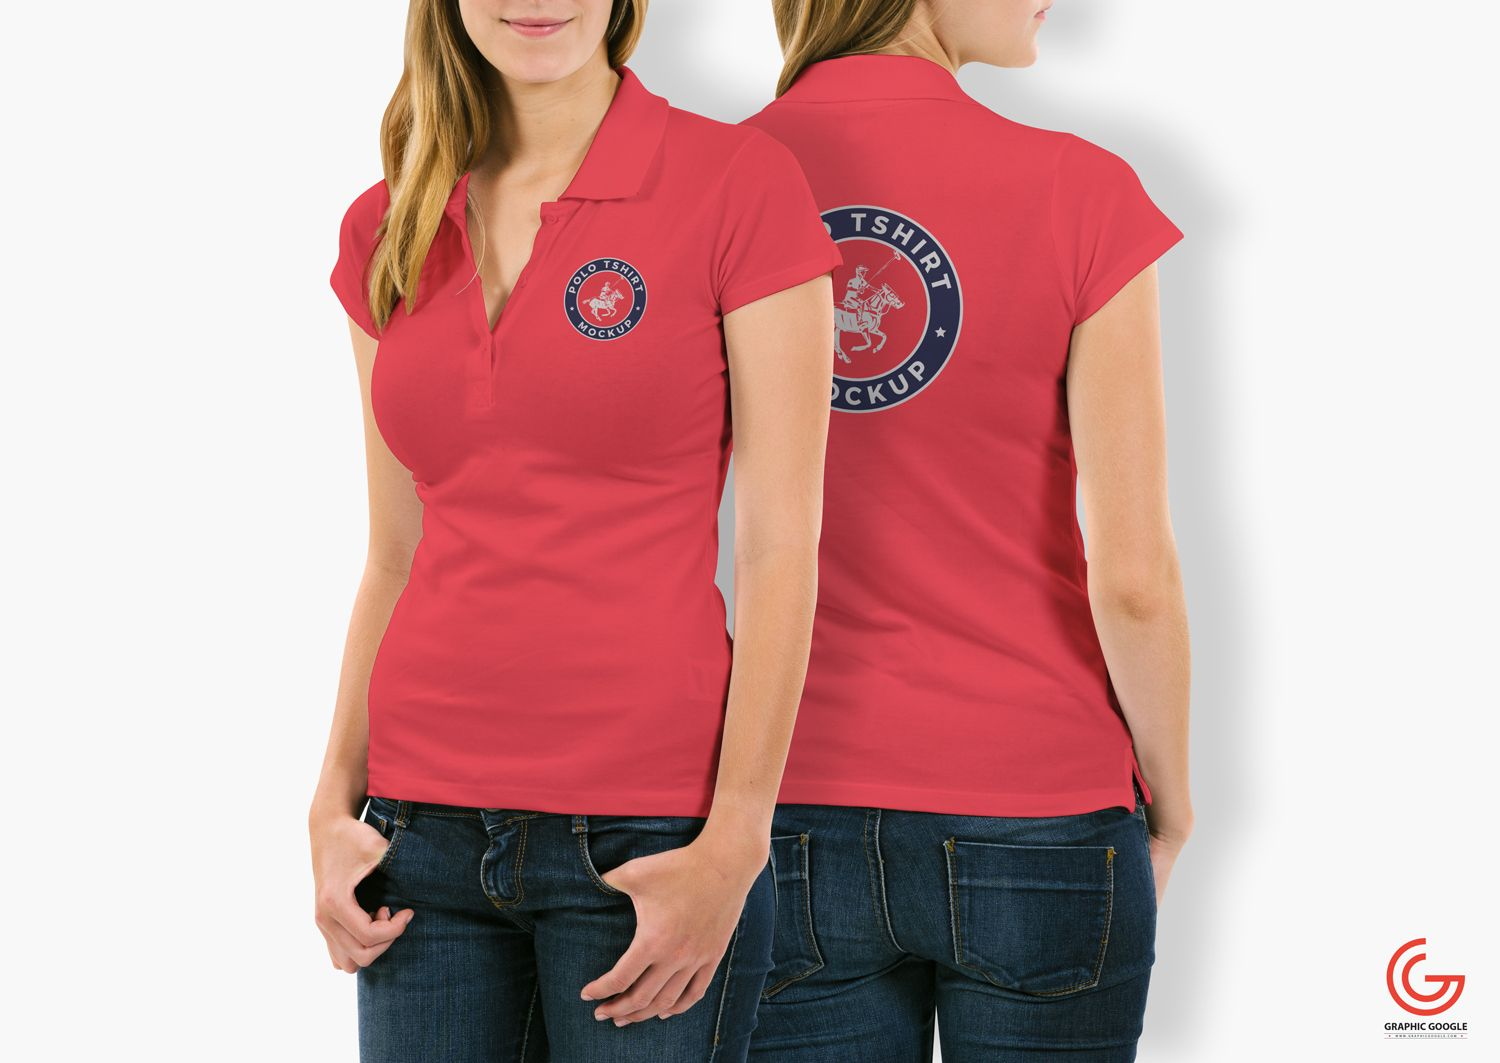 Download Free Woman With Polo T Shirt Mockup Psd 3 Polo Shirt Women Polo T Shirts Shirt Mockup